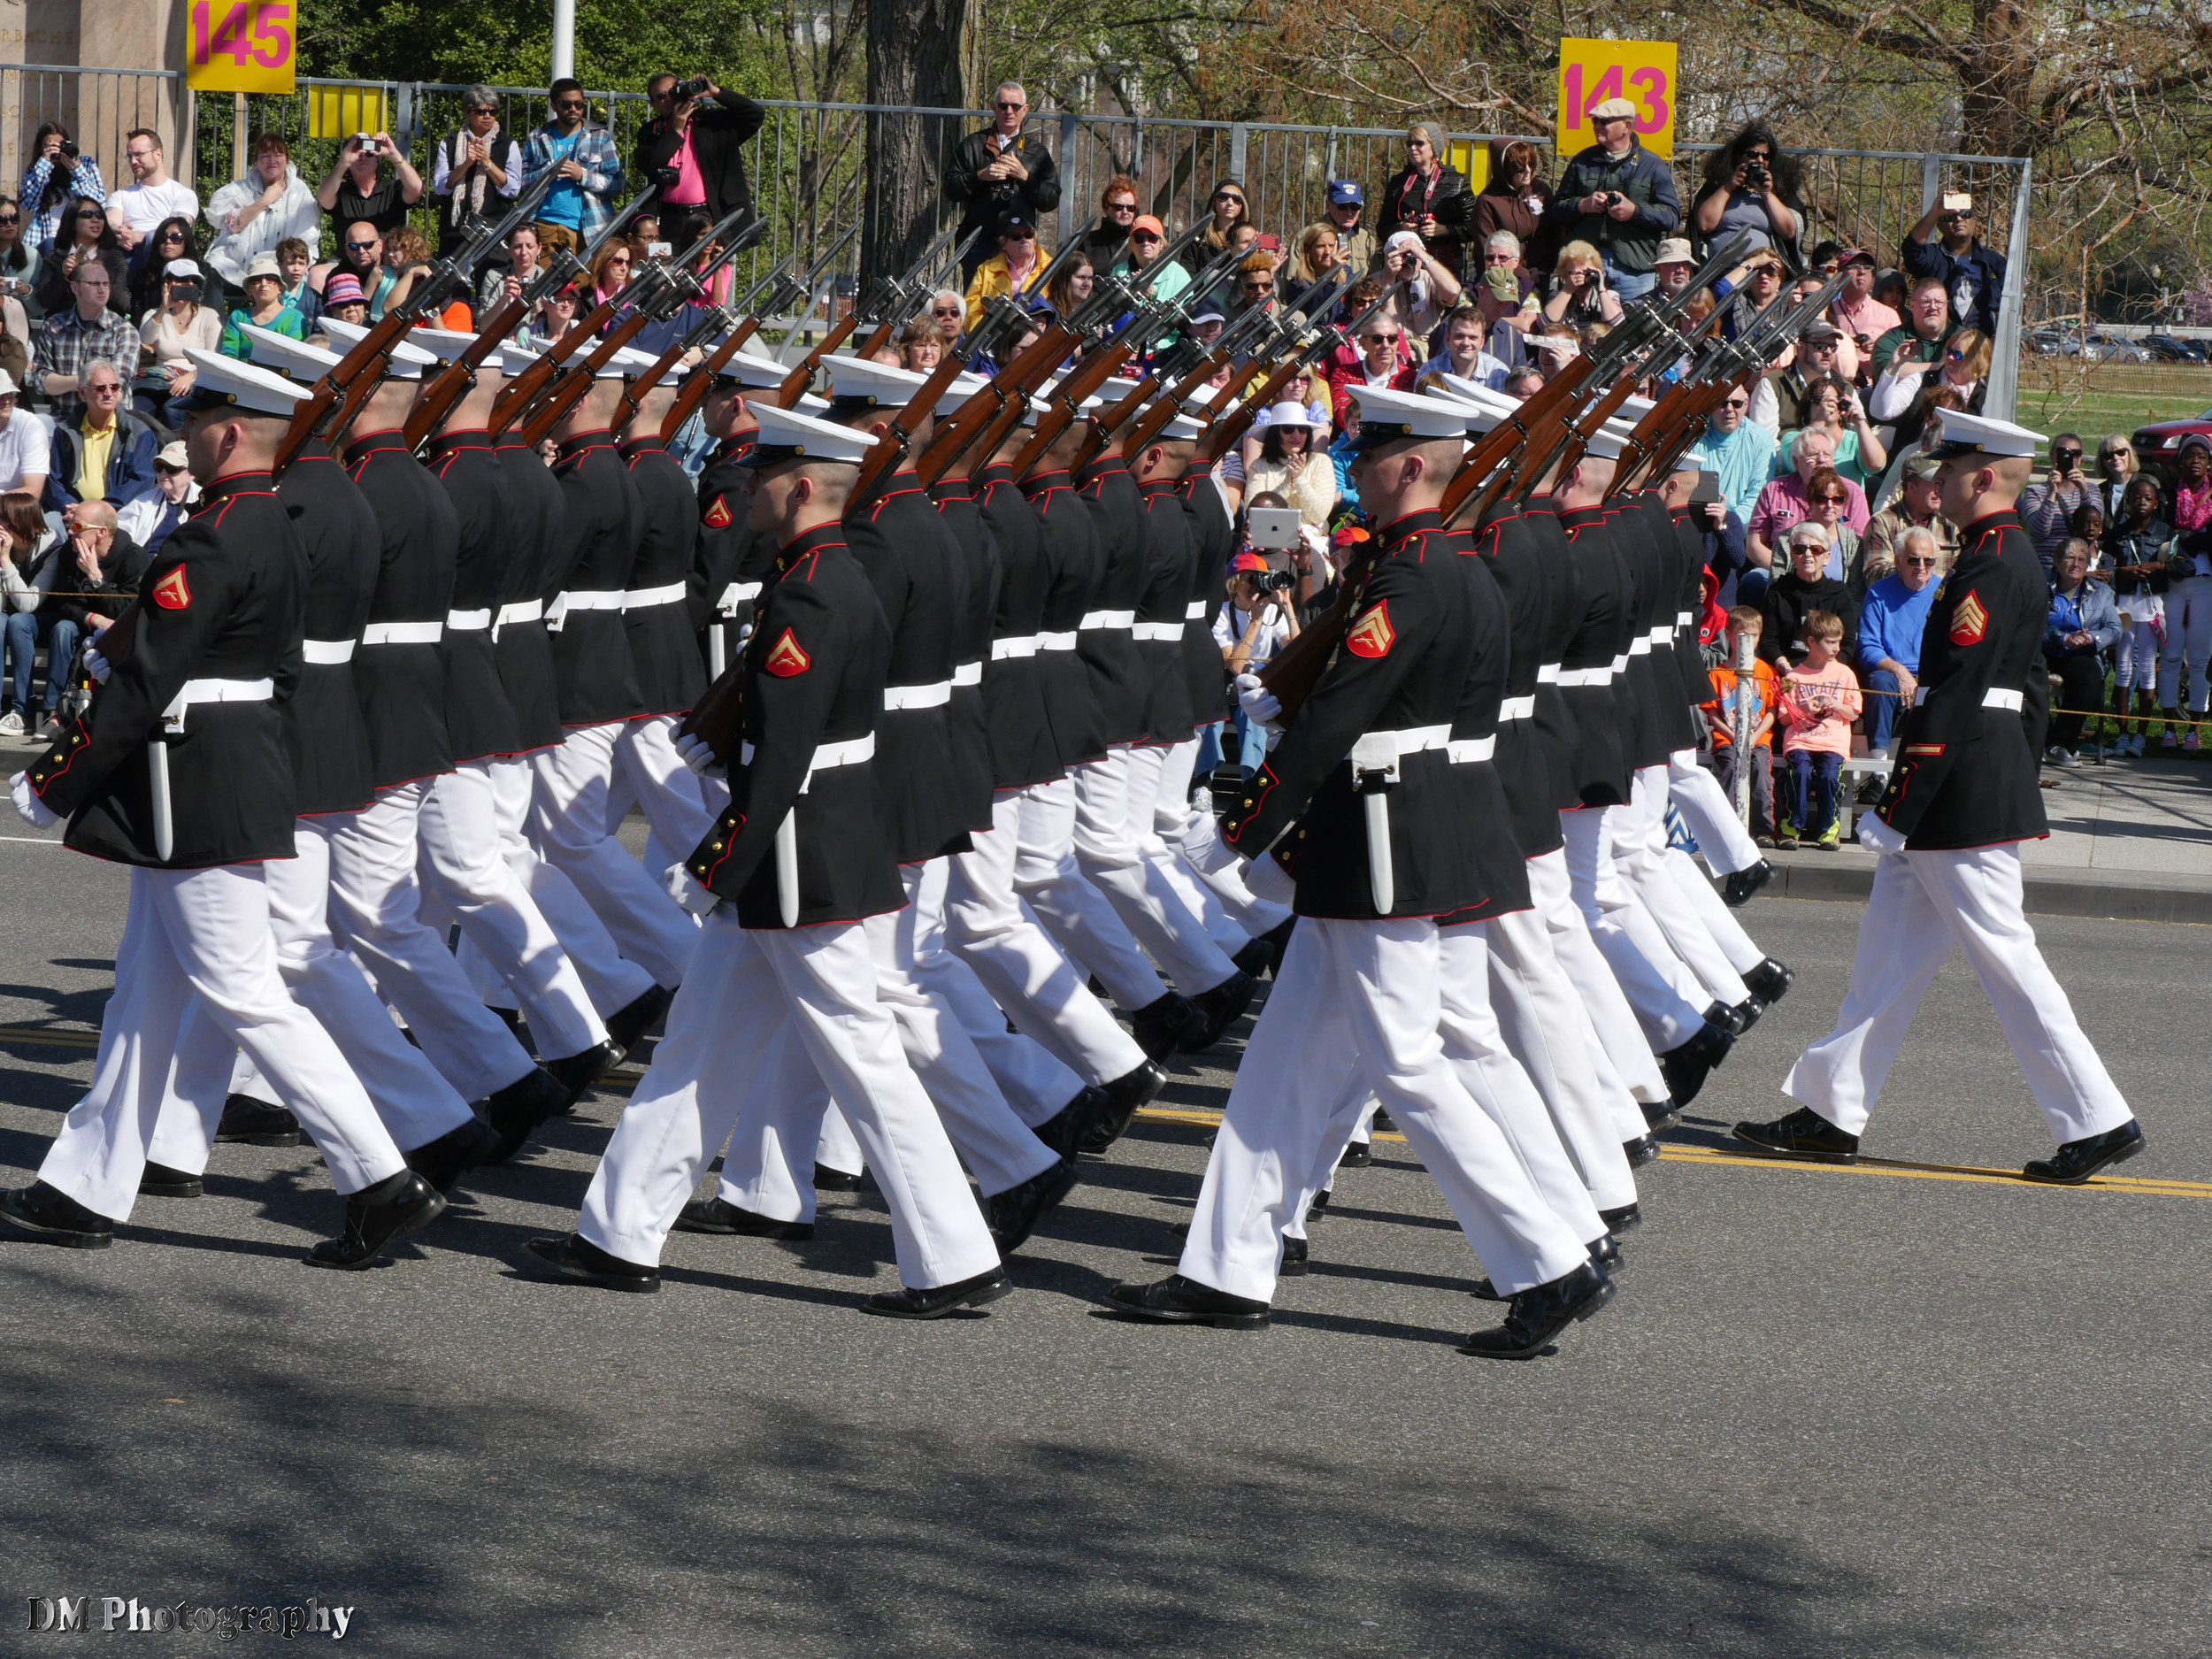 national_cherry_blossom_festival_2015_parade_06.jpg